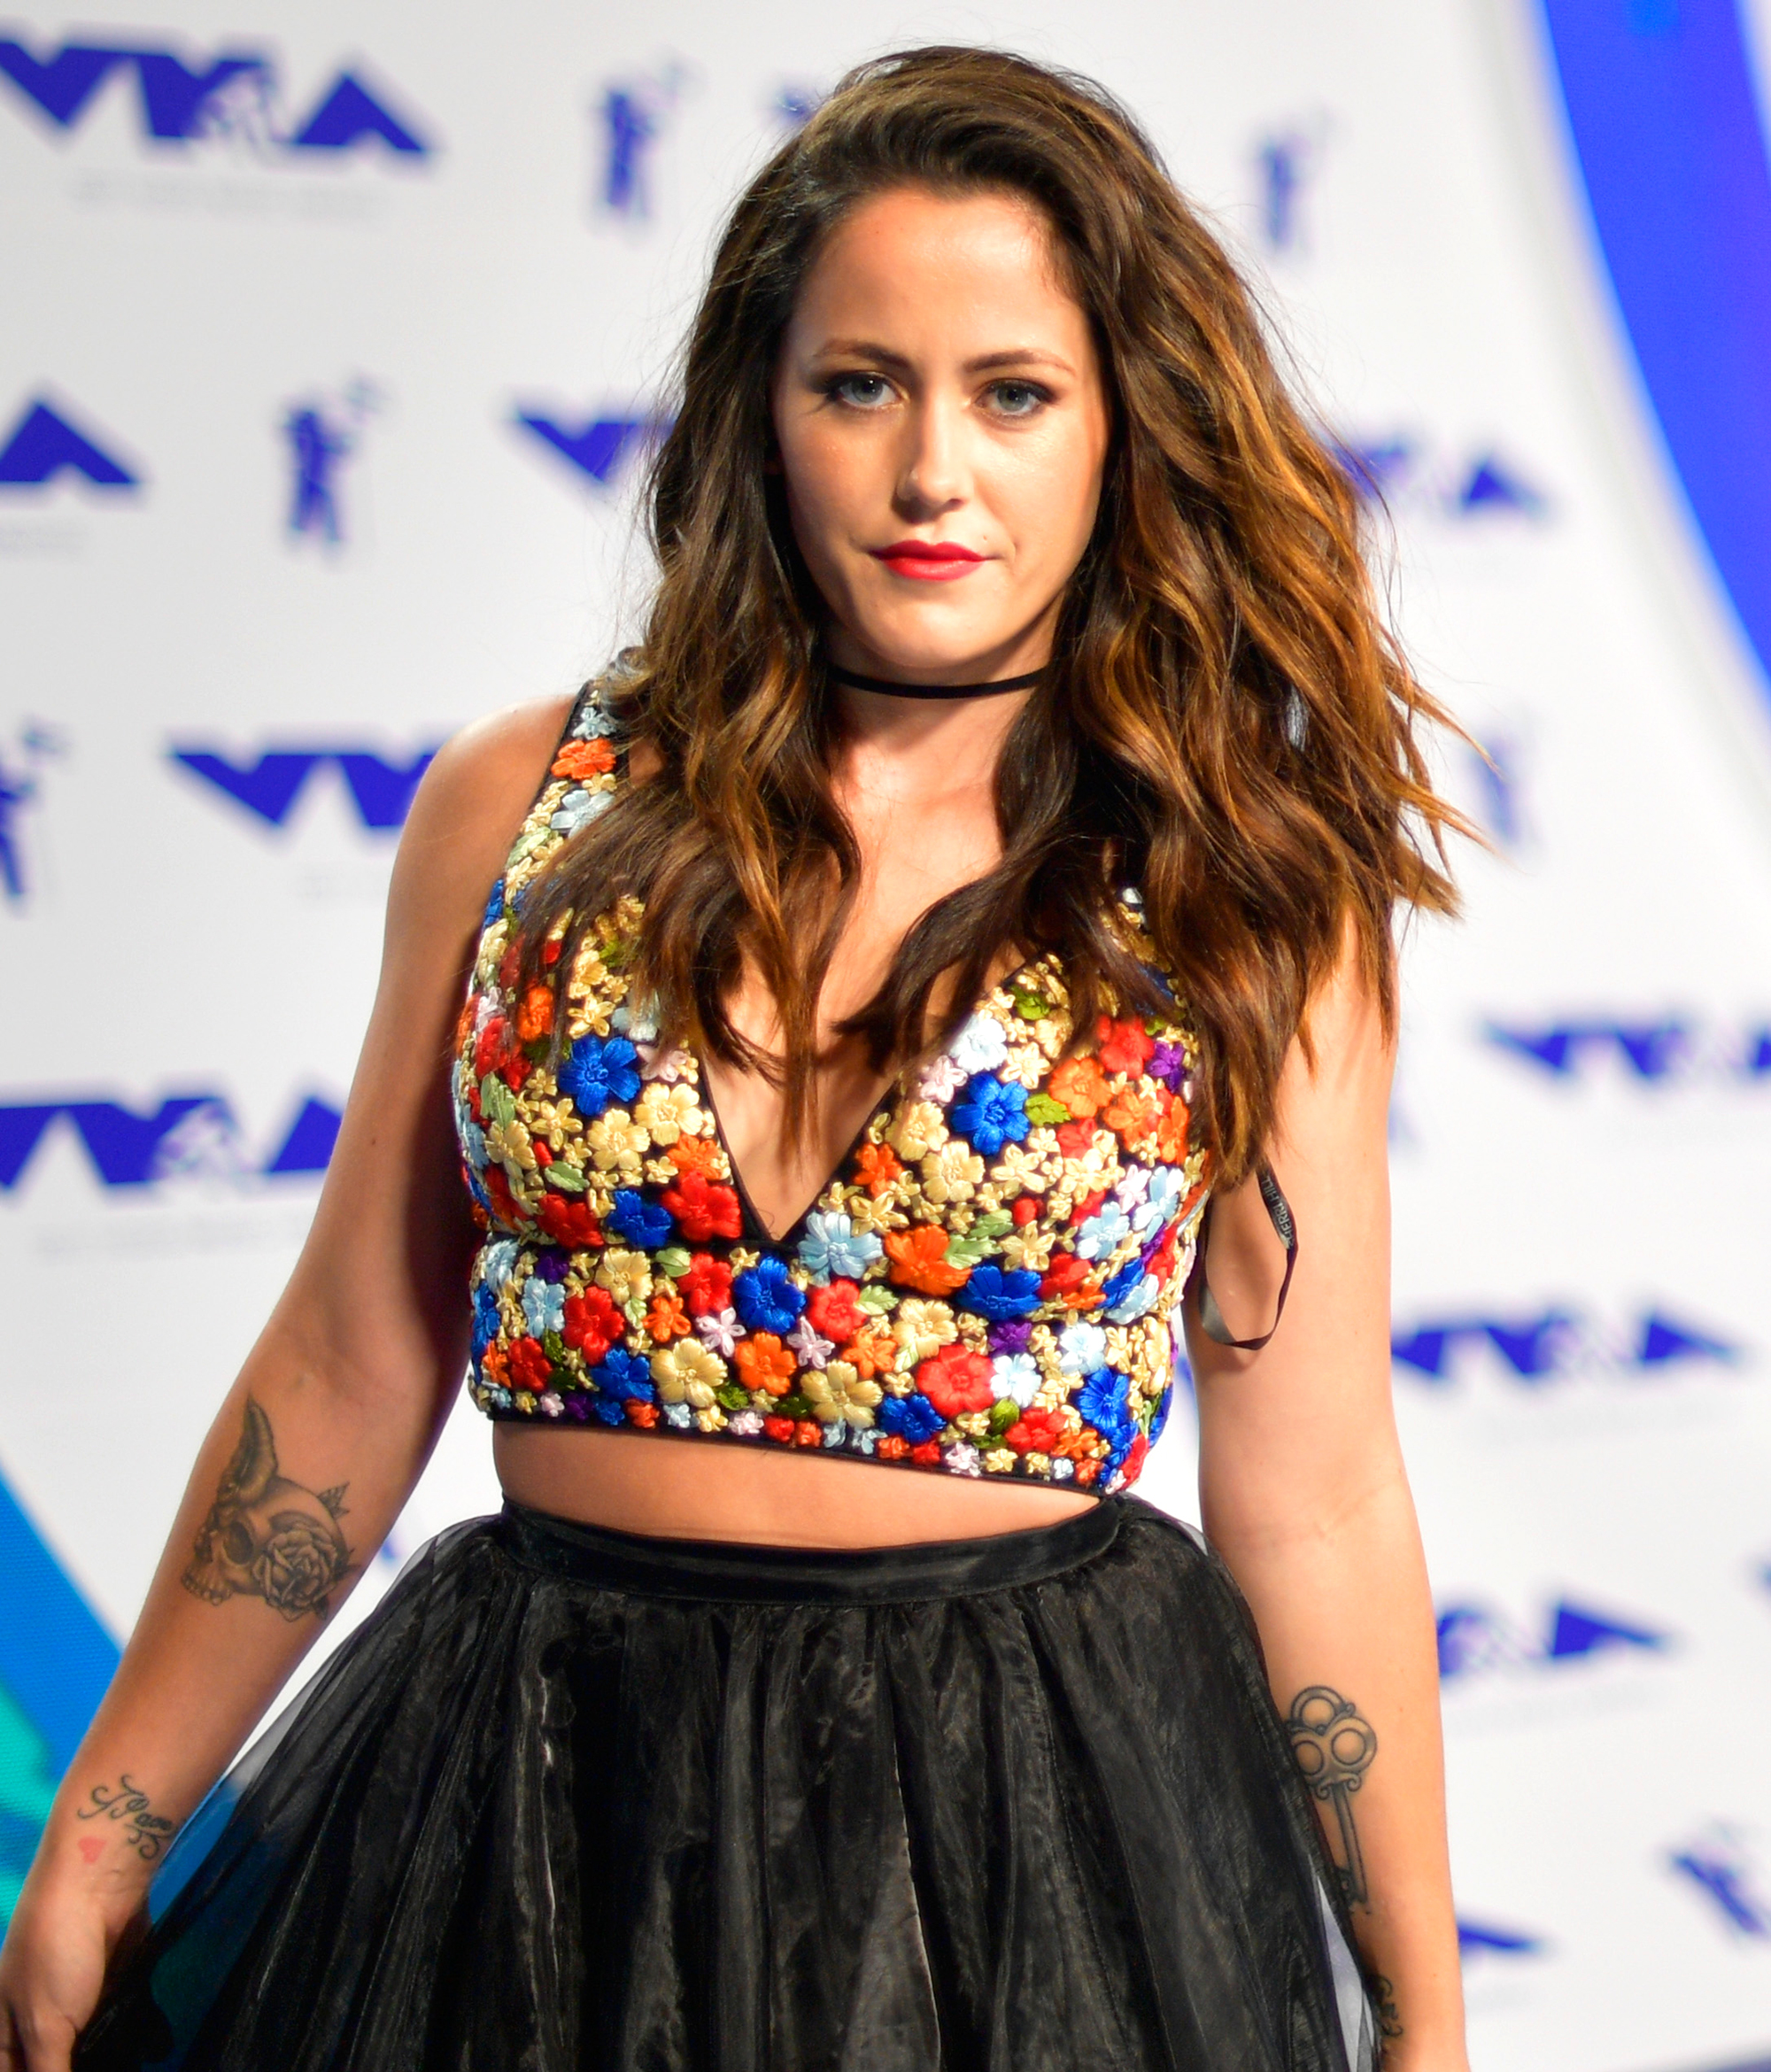 Jenelle Evans involved in road rage incident, pulls gun on man Video